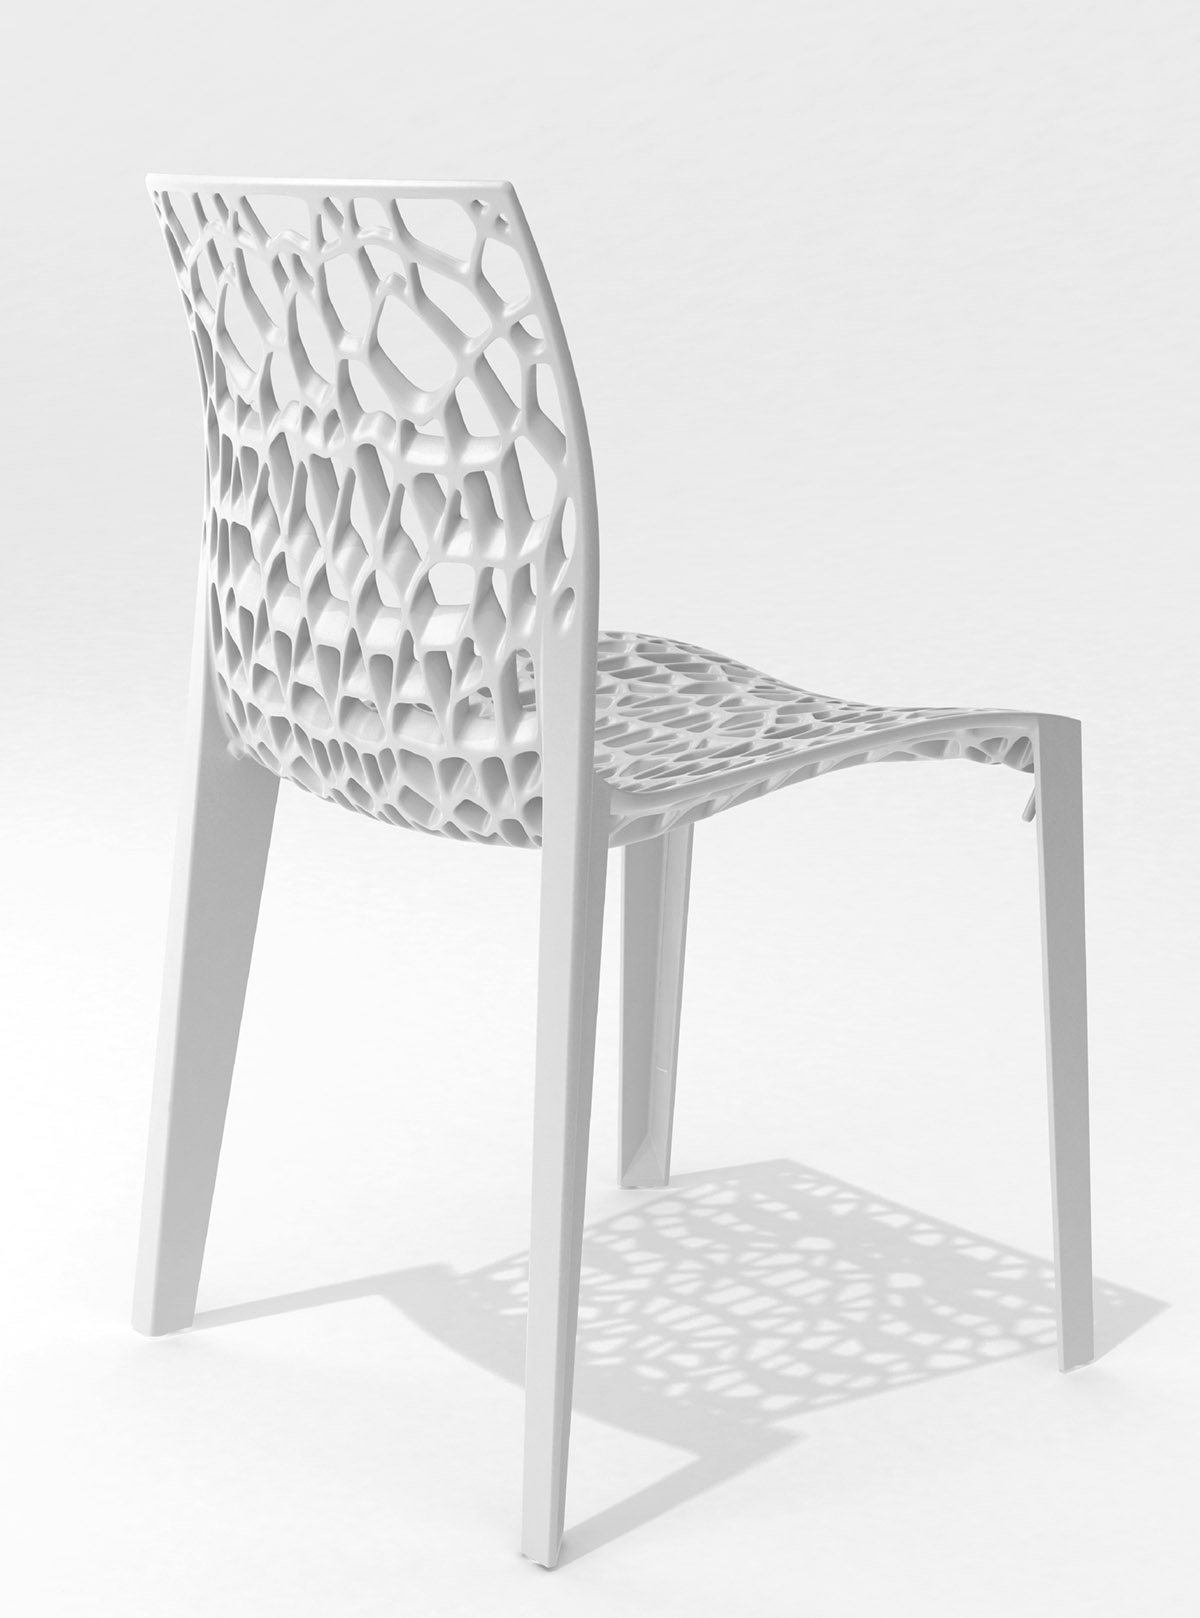 Coral chair stackable white designer chair designer Movisi ton haas